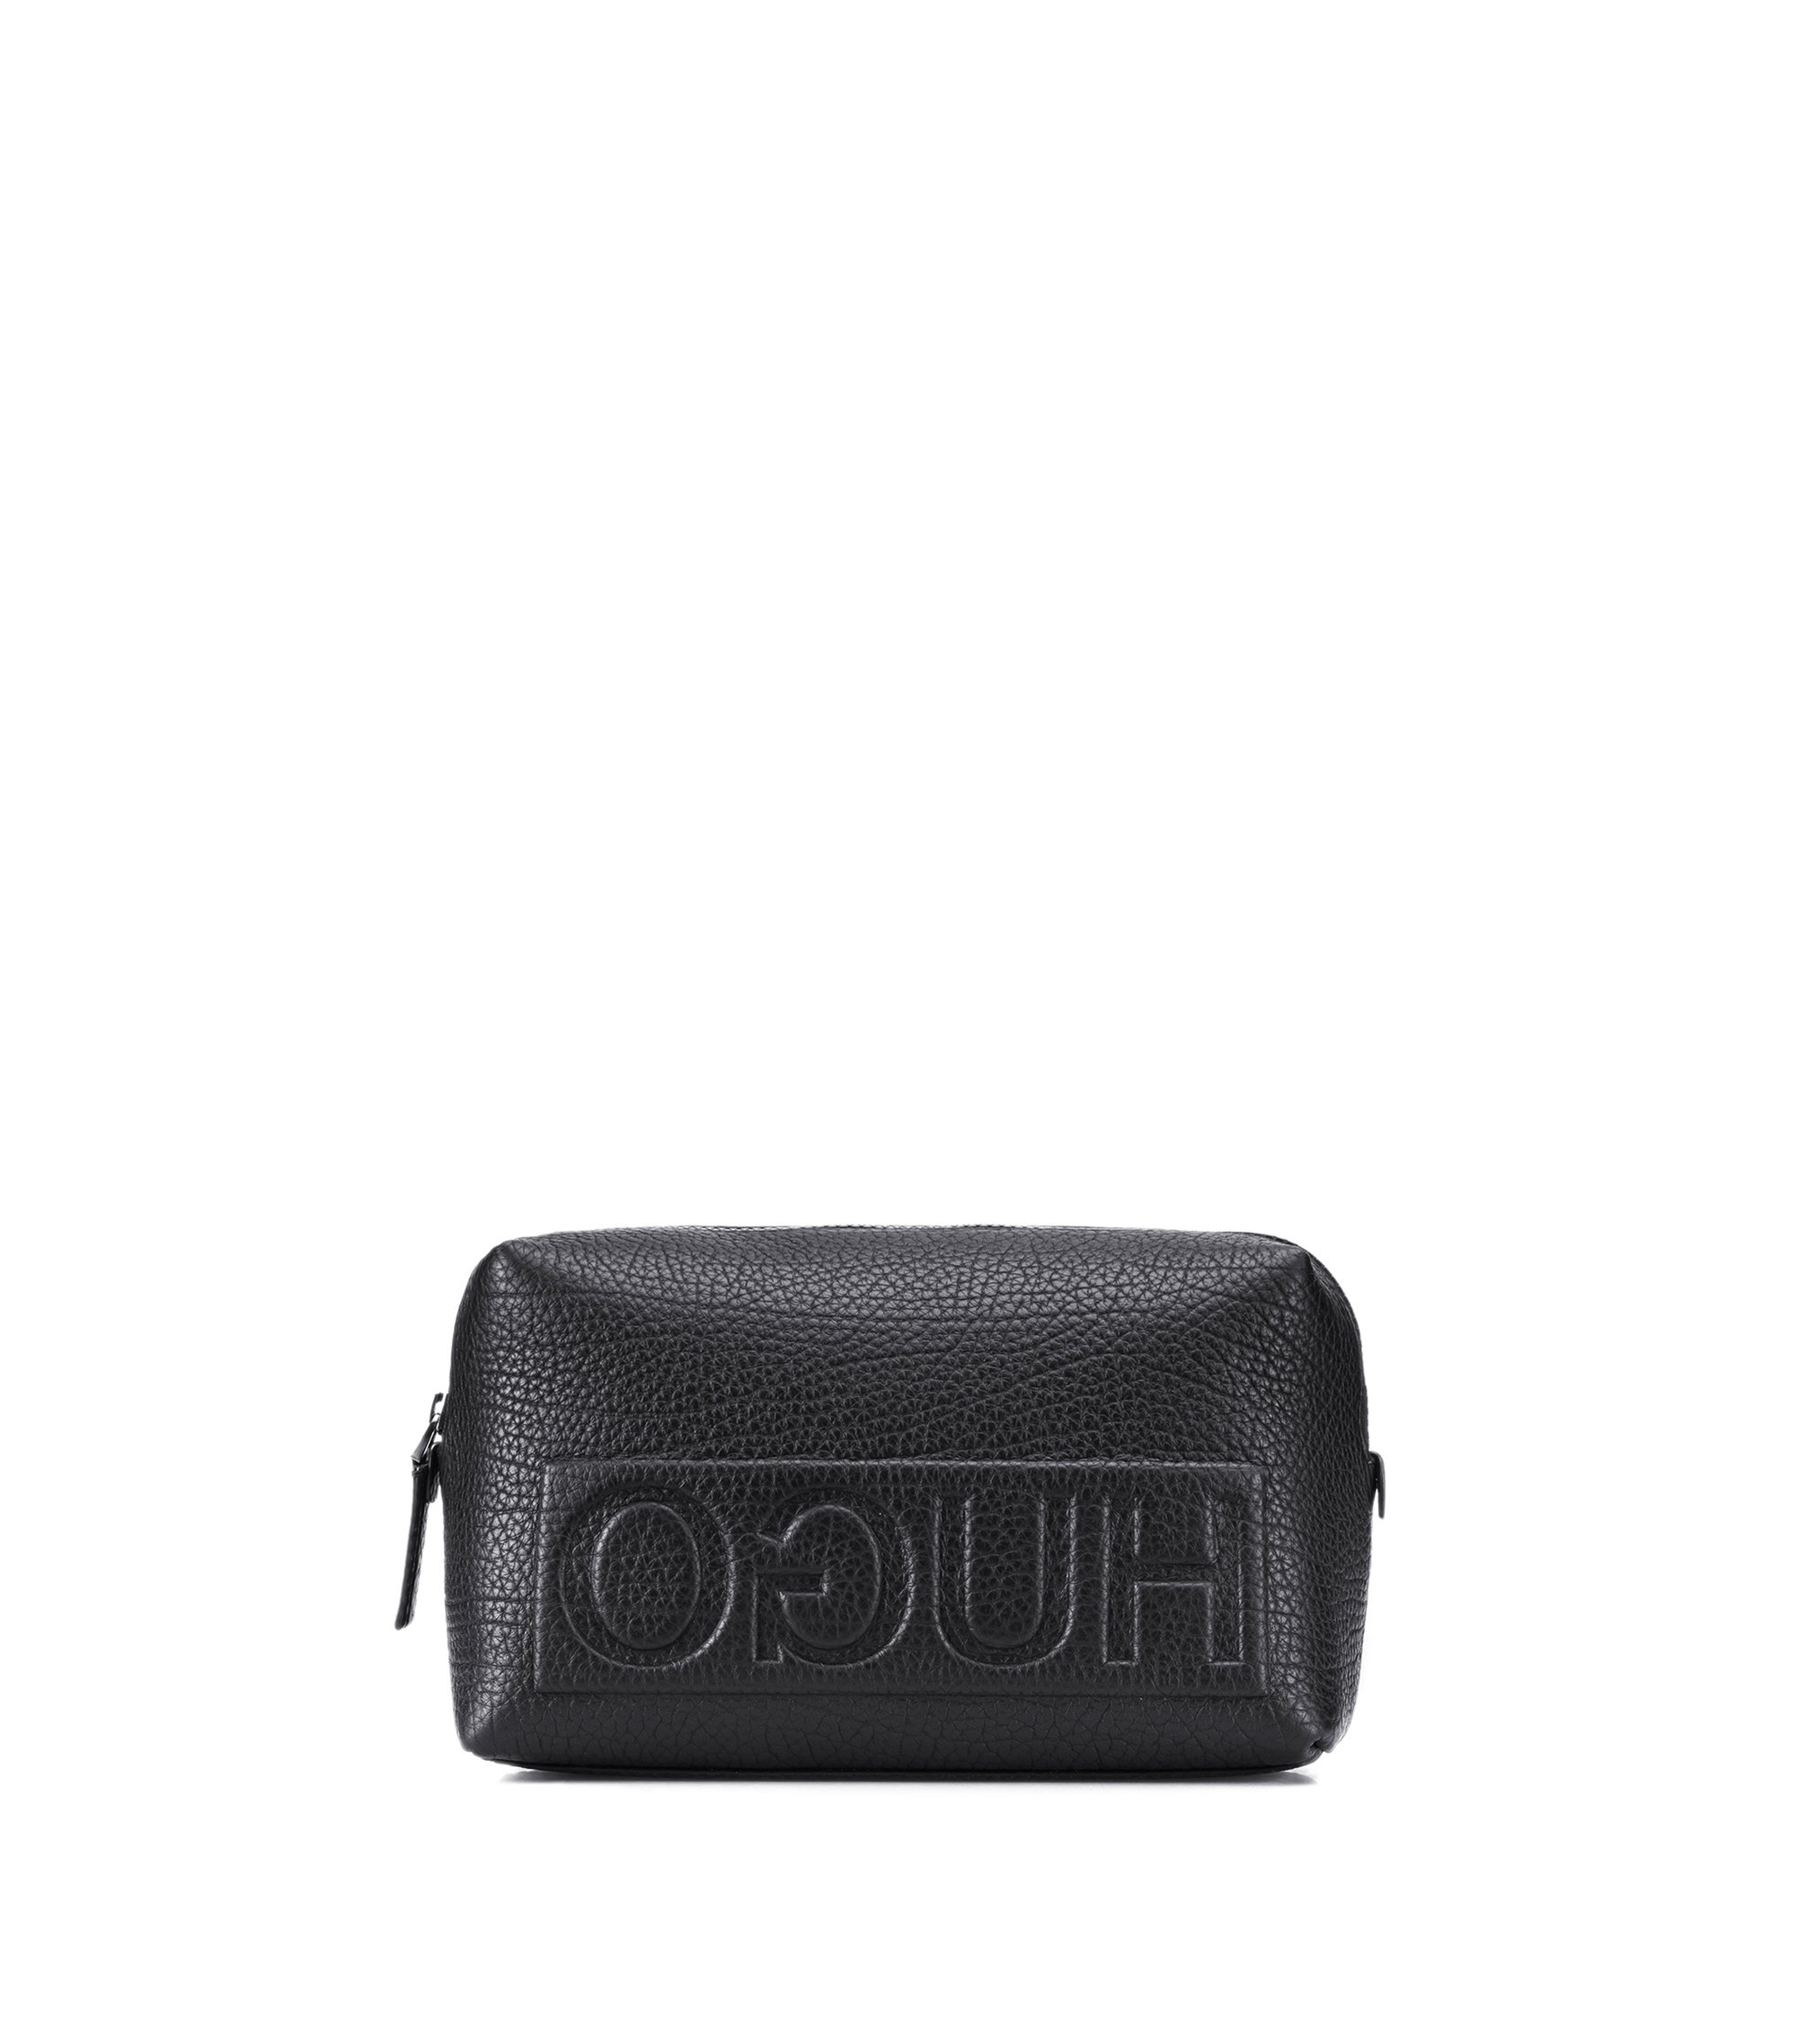 Reverse-logo washbag in grained leather, Black